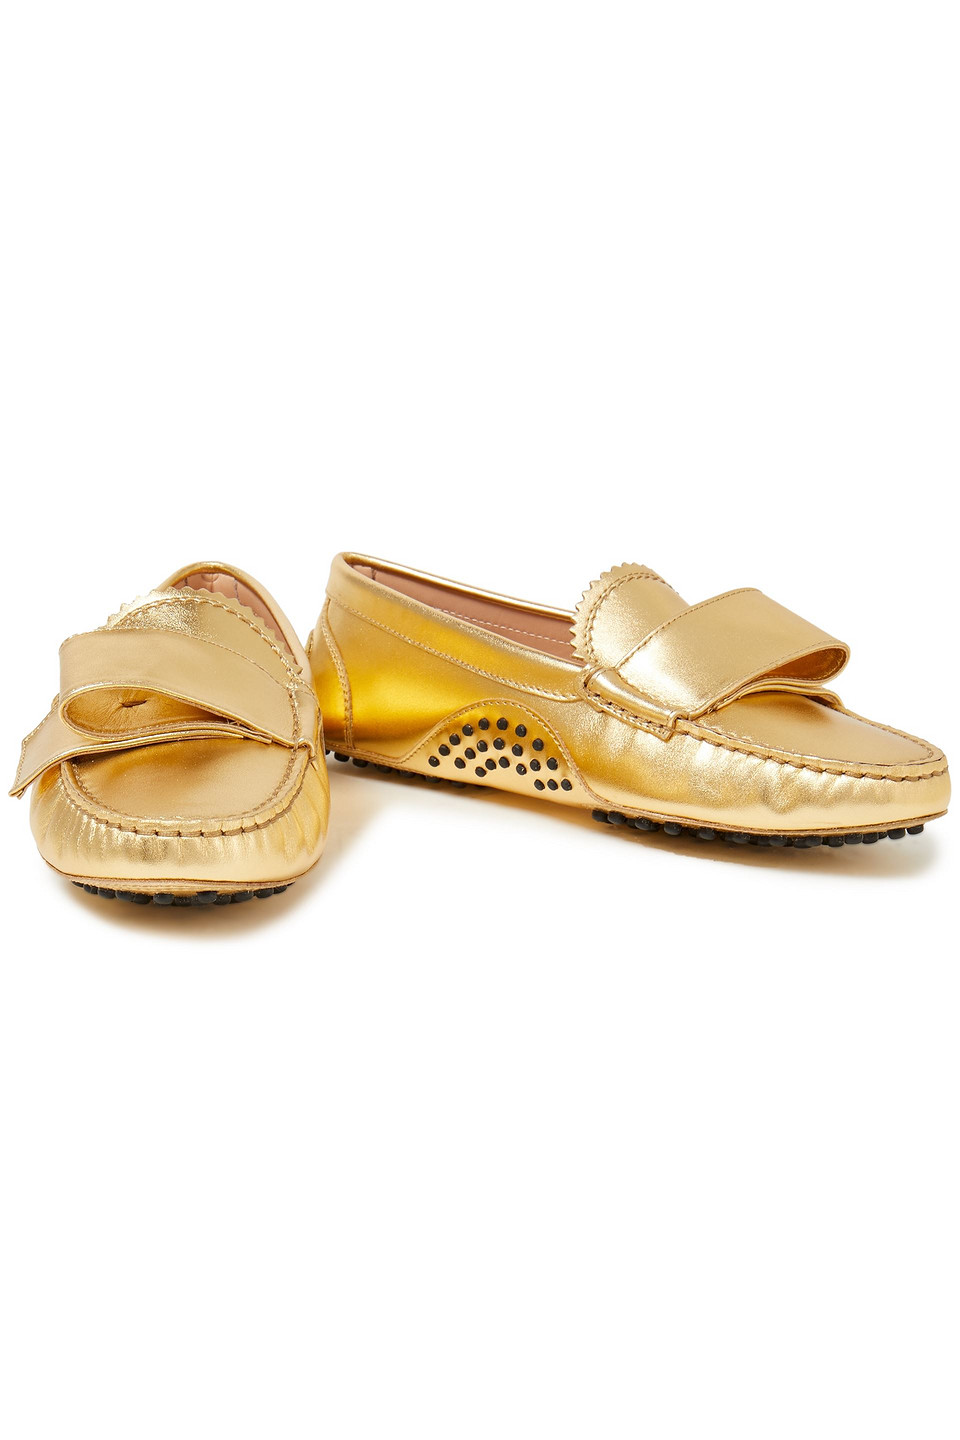 Tod's | Tod's Woman + Alessandro Dell'acqua Bow-embellished Metallic Leather Loafers Gold | Clouty